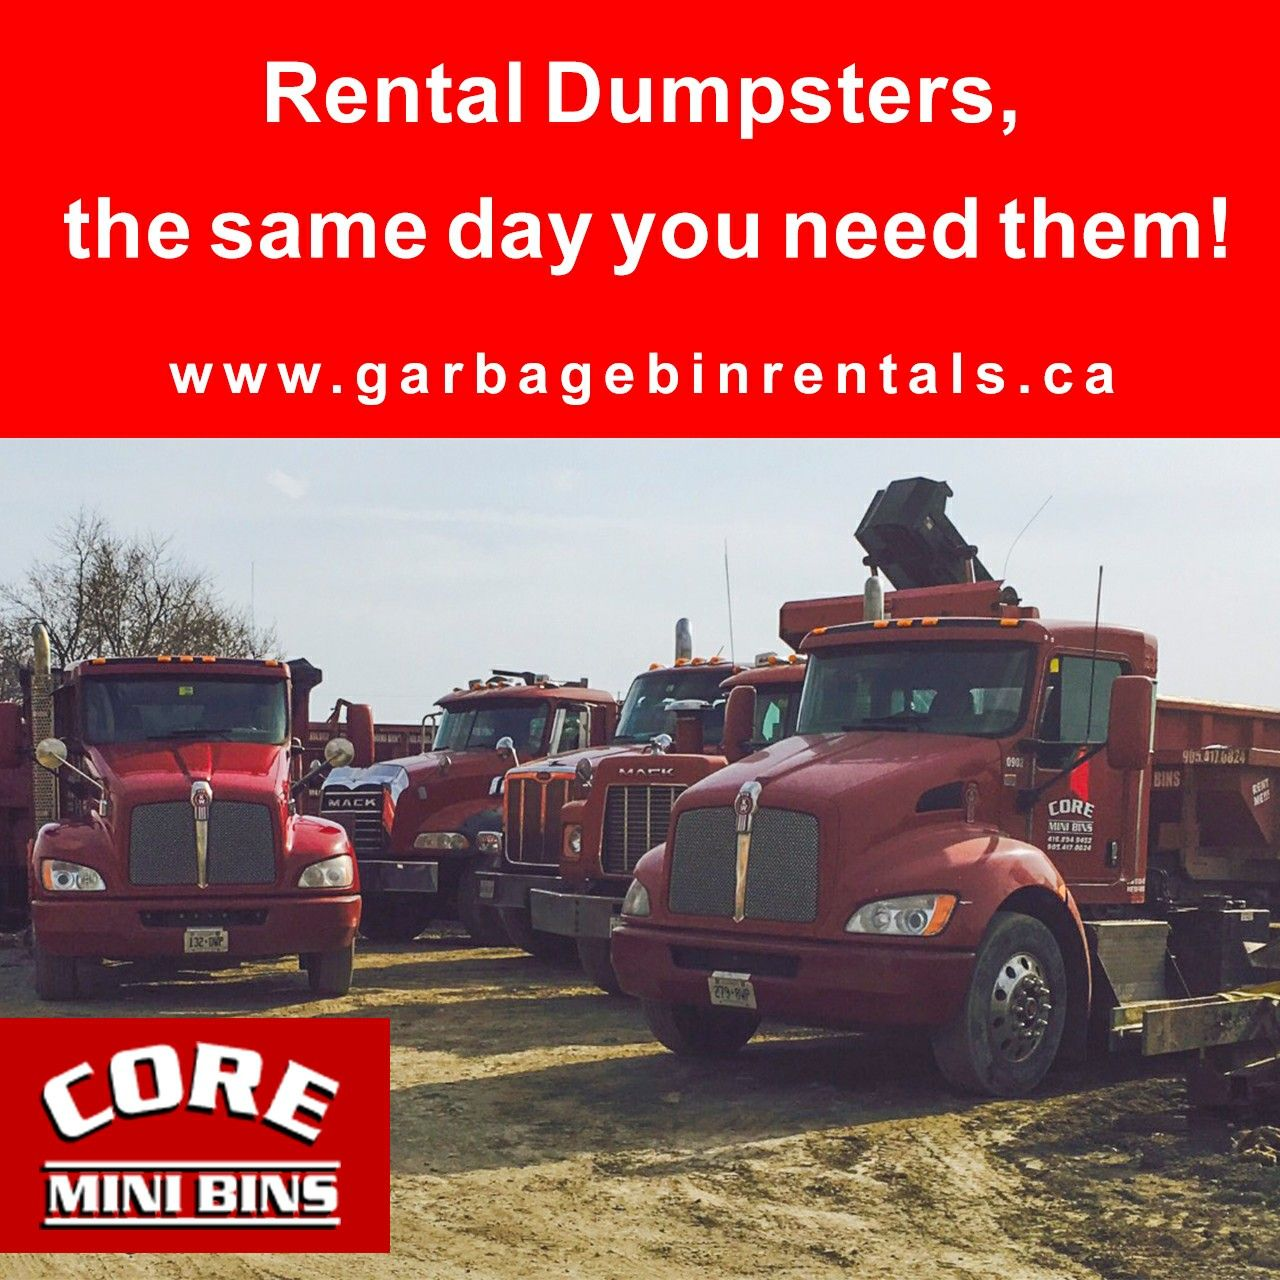 Here at Core Mini Bins, Mini Bins is right in the name. We